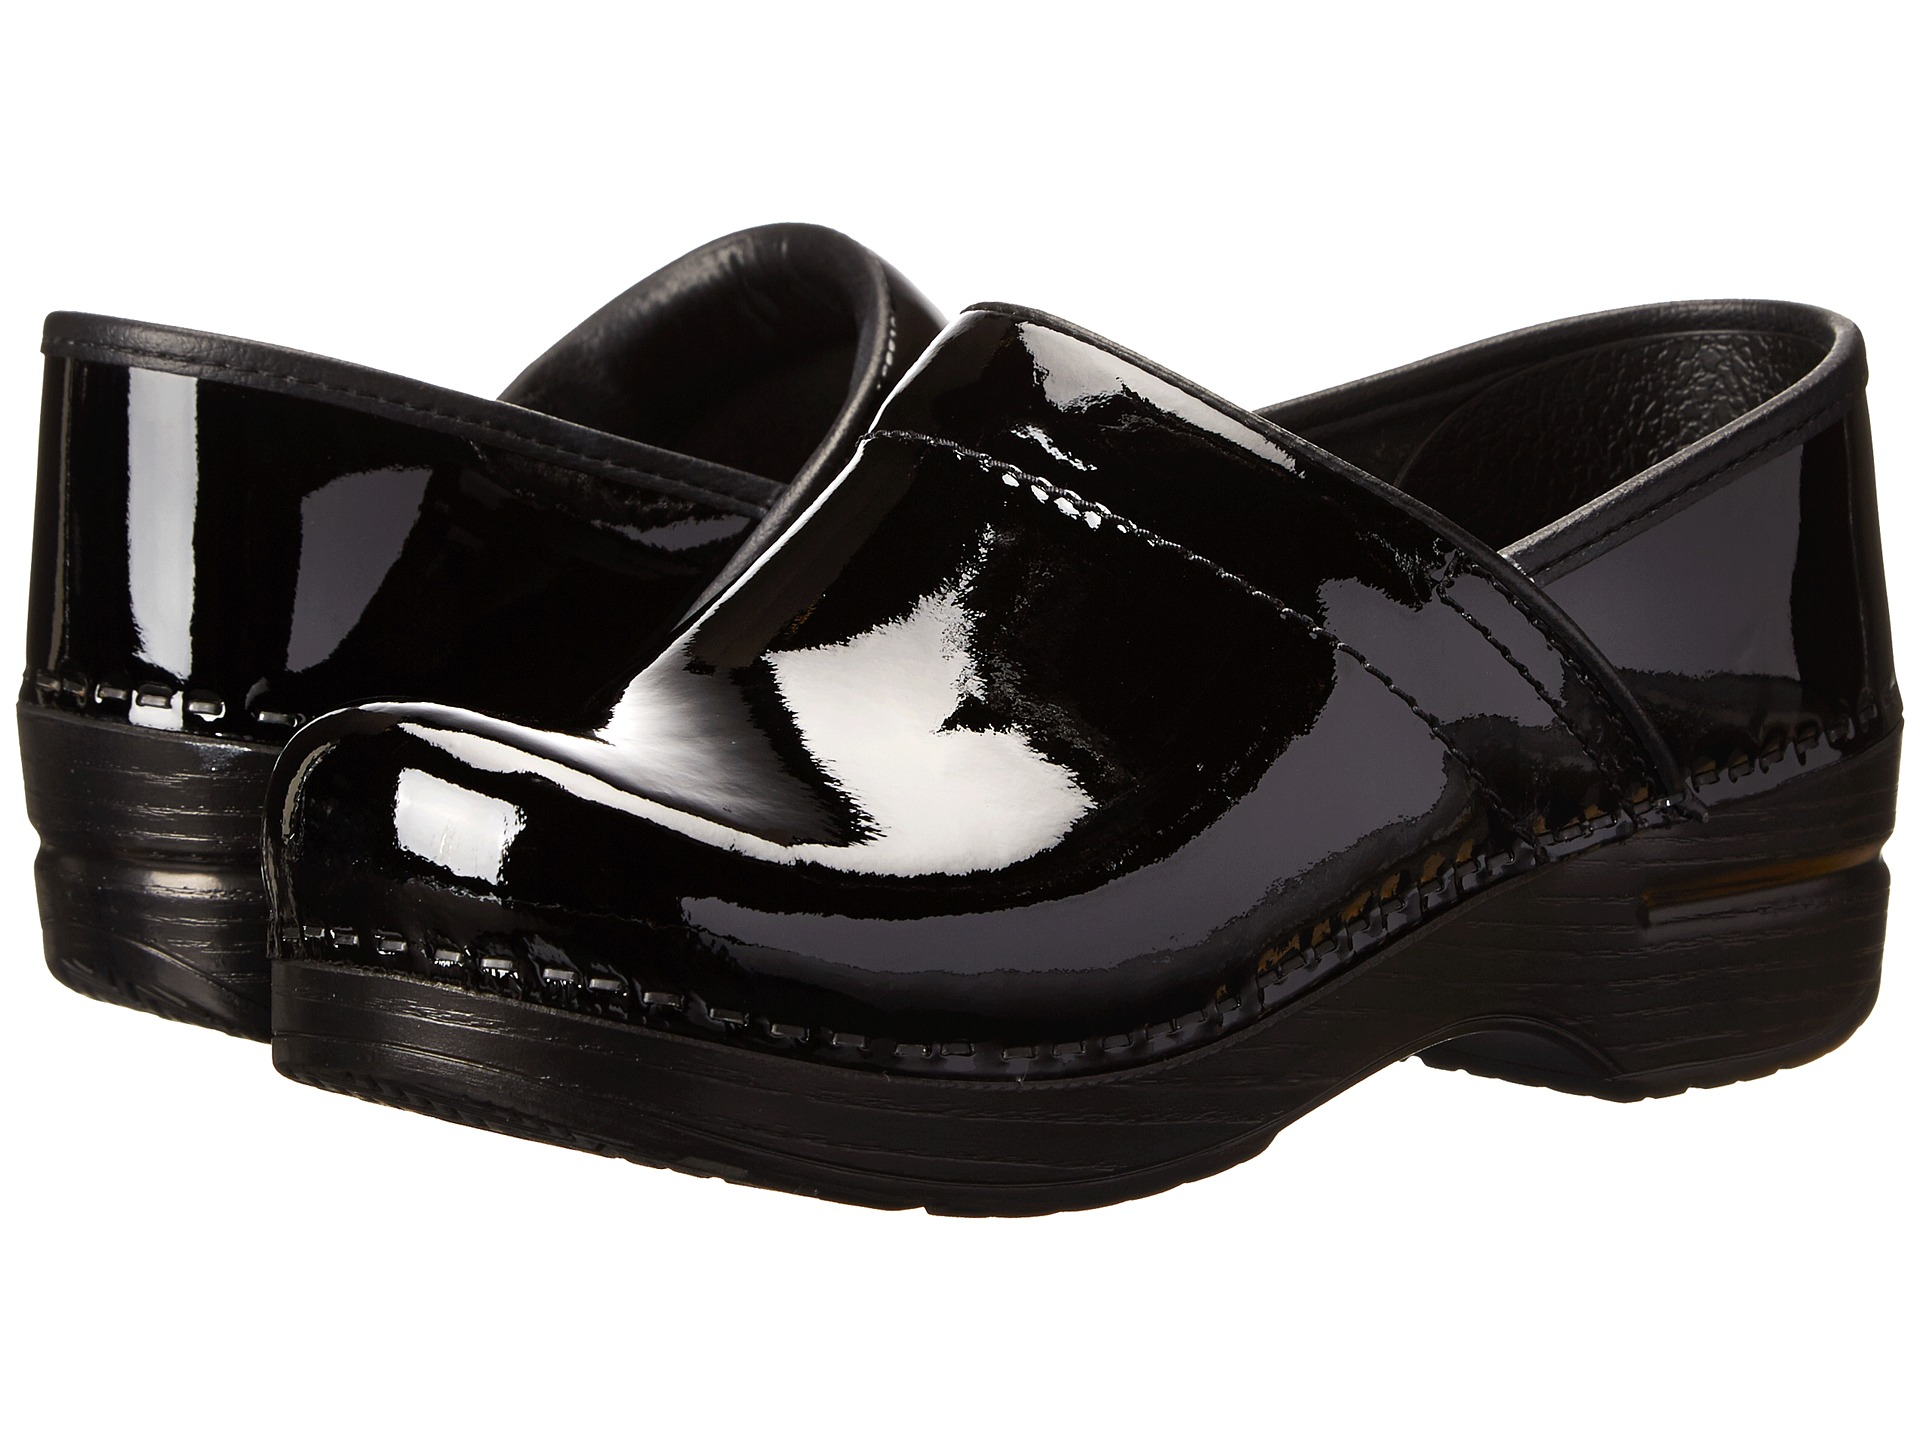 Dansko Patent Leather Shoes